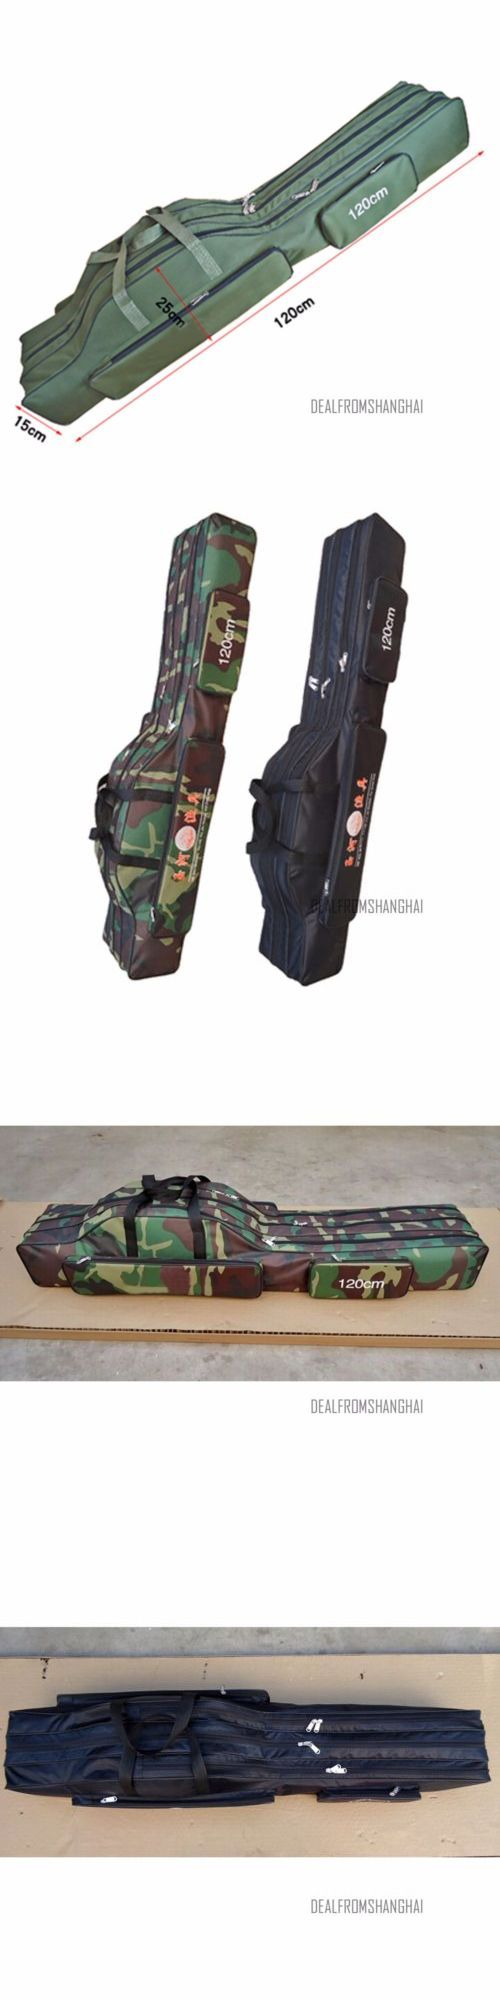 Rod Cases Tubes and Racks 81473: Fishing Rod Tackle Bag Case Carry Padded Holder Luggage Holdall Portable Outdoor -> BUY IT NOW ONLY: $37.99 on eBay!